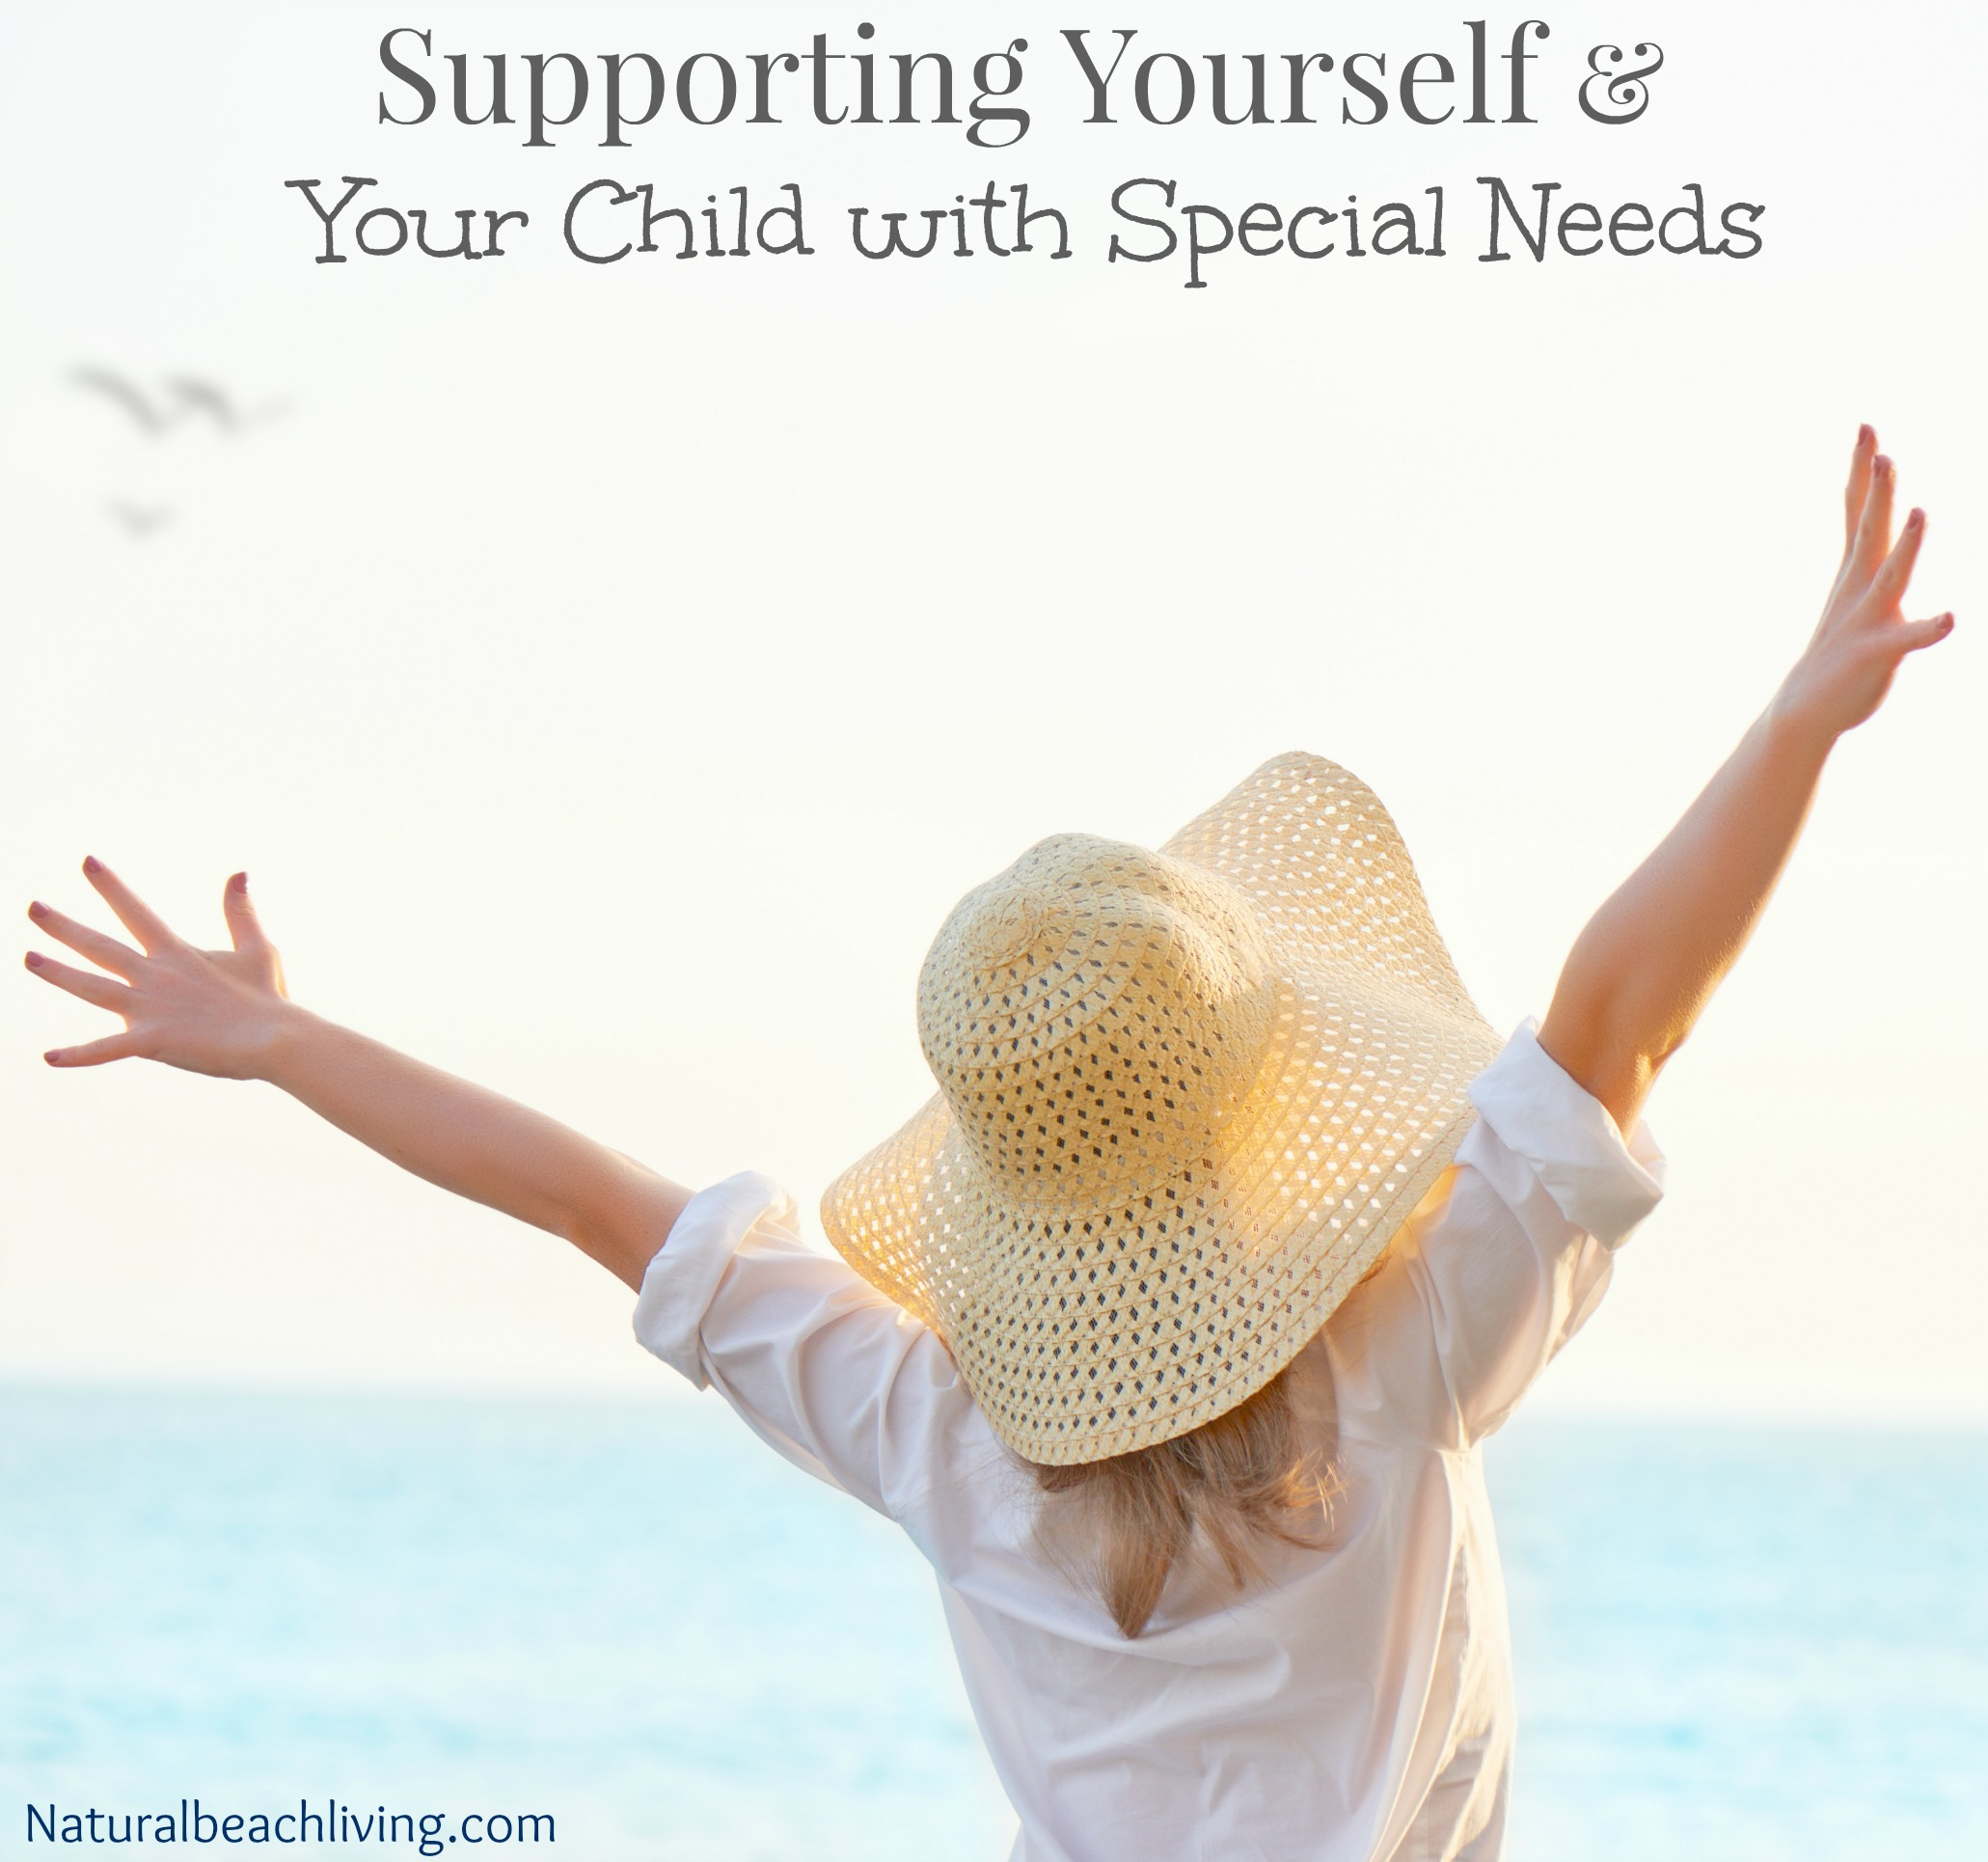 Supporting Your Child with Special Needs, Ways to support moms, re-energize, special needs resources, Easy Ways to Feel Better during the day, Mom Support